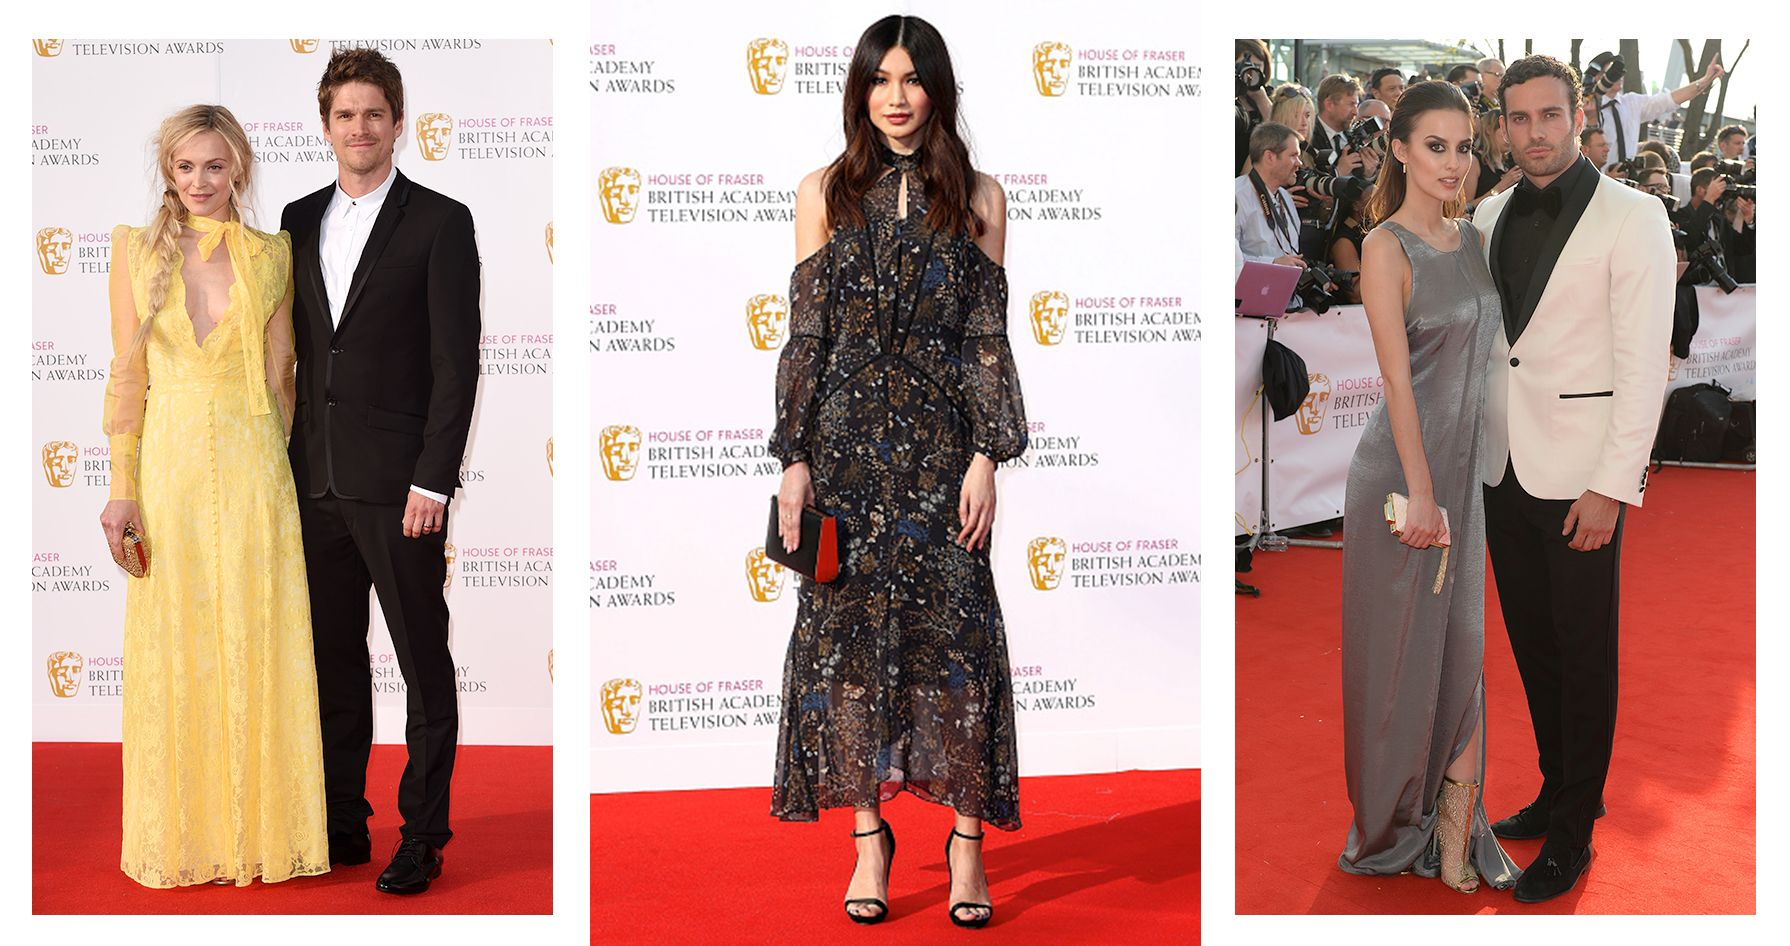 WHO WORE RI AT THE BAFTAS?